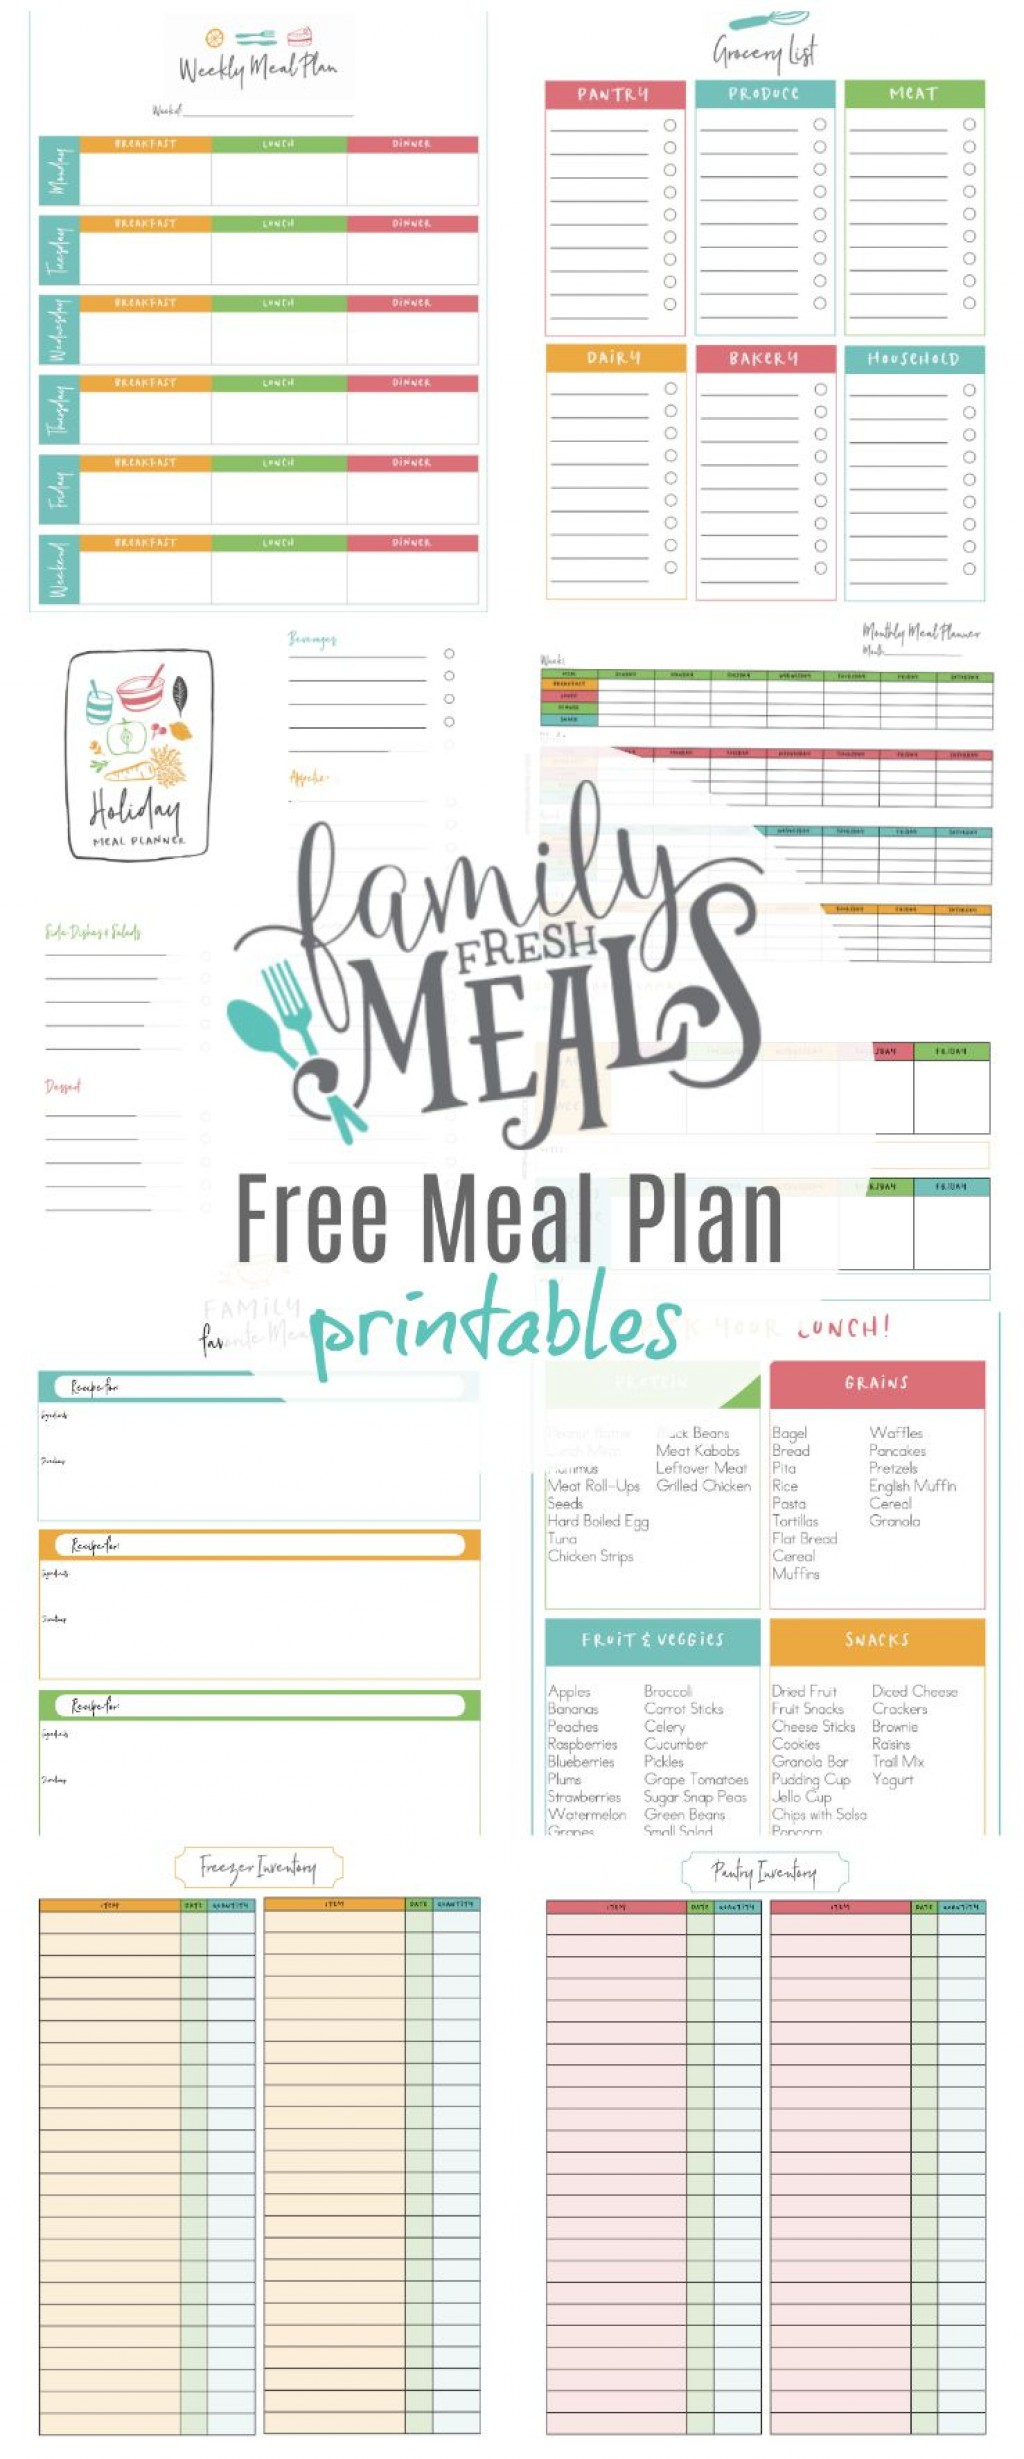 003 Stunning Free Meal Plan Template Concept  Templates Easy Keto Printable Planner For Weight LosLarge